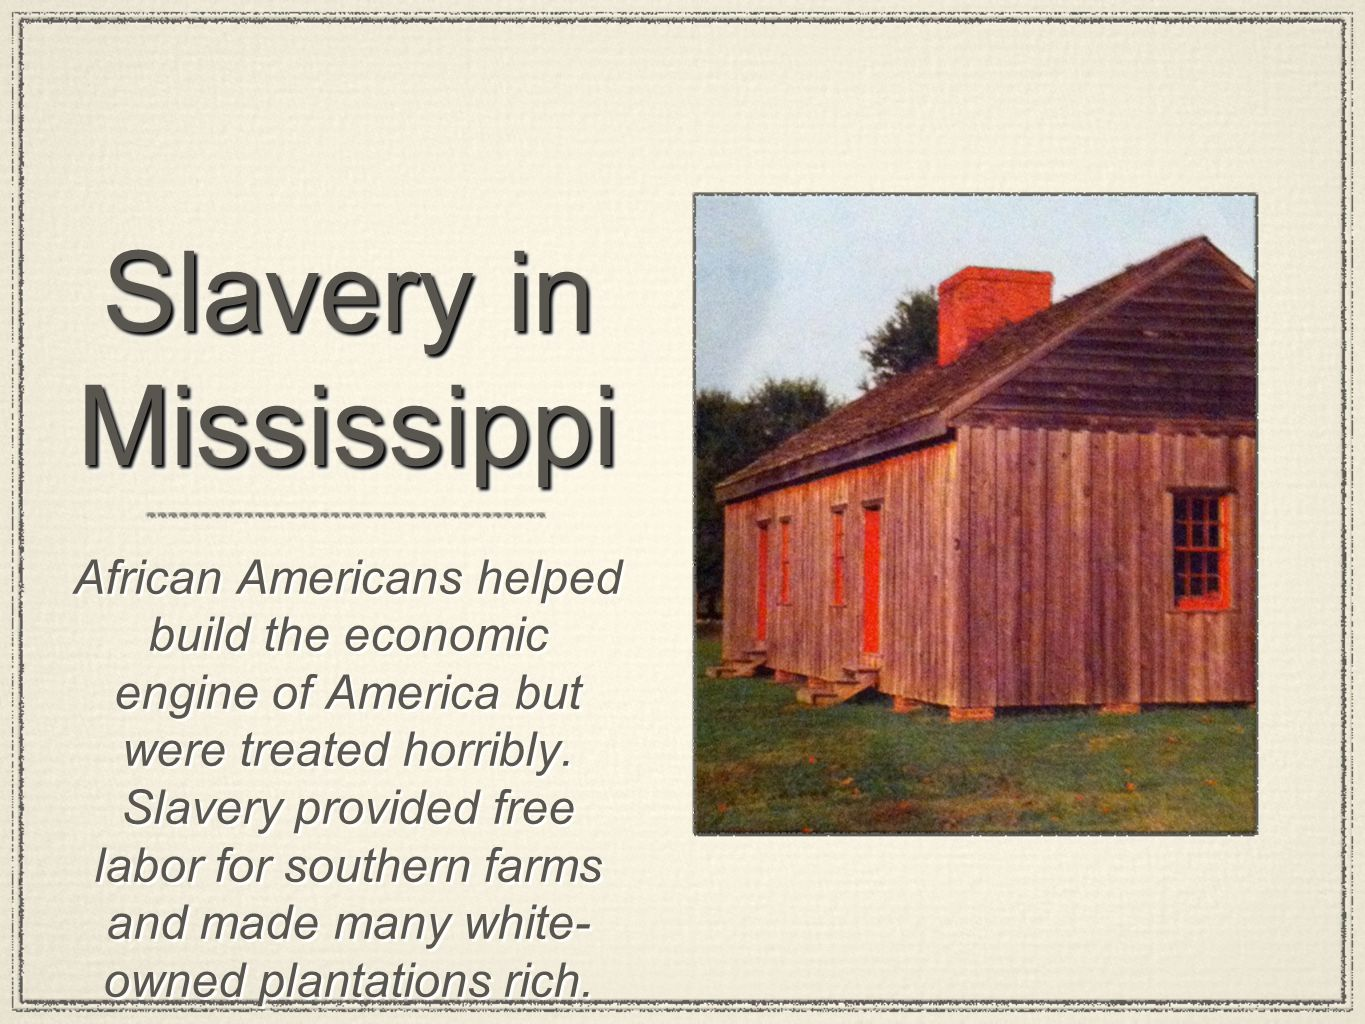 Slavery in Mississippi African Americans helped build the economic engine of America but were treated horribly. Slavery provided free labor for southe